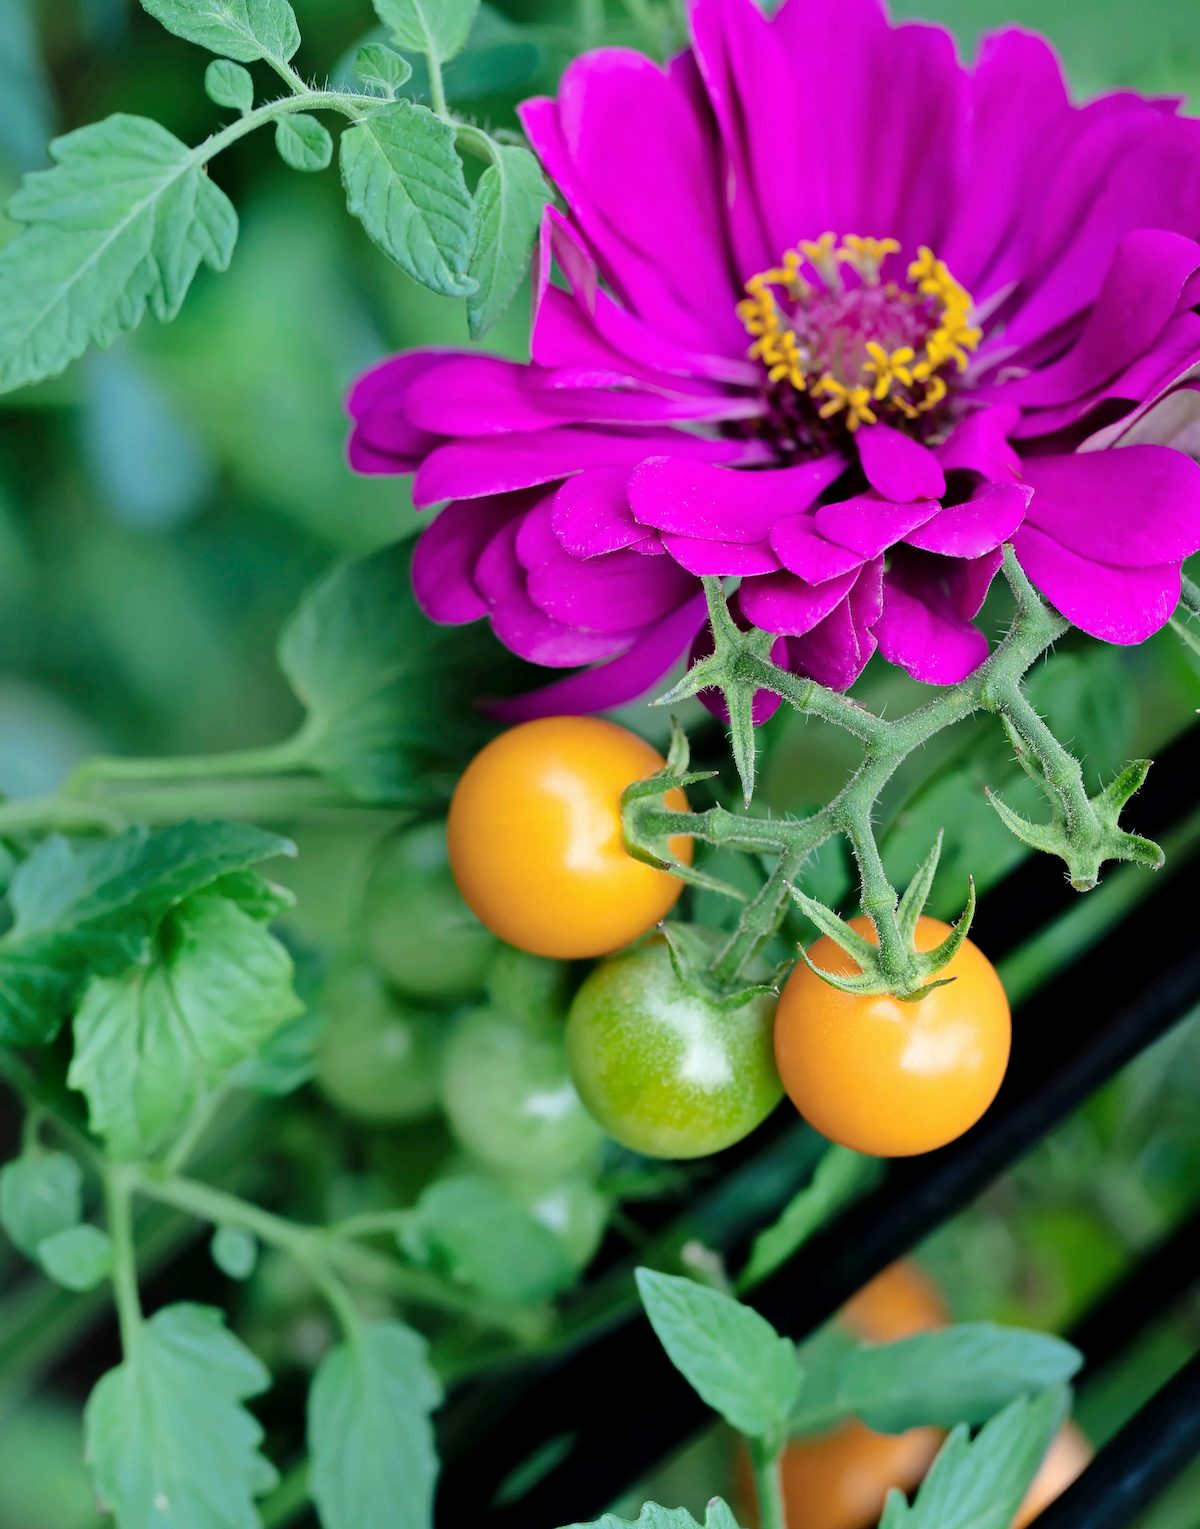 Both veggies and annuals, like this tomato and zinnia, help provide pollen for local insects.